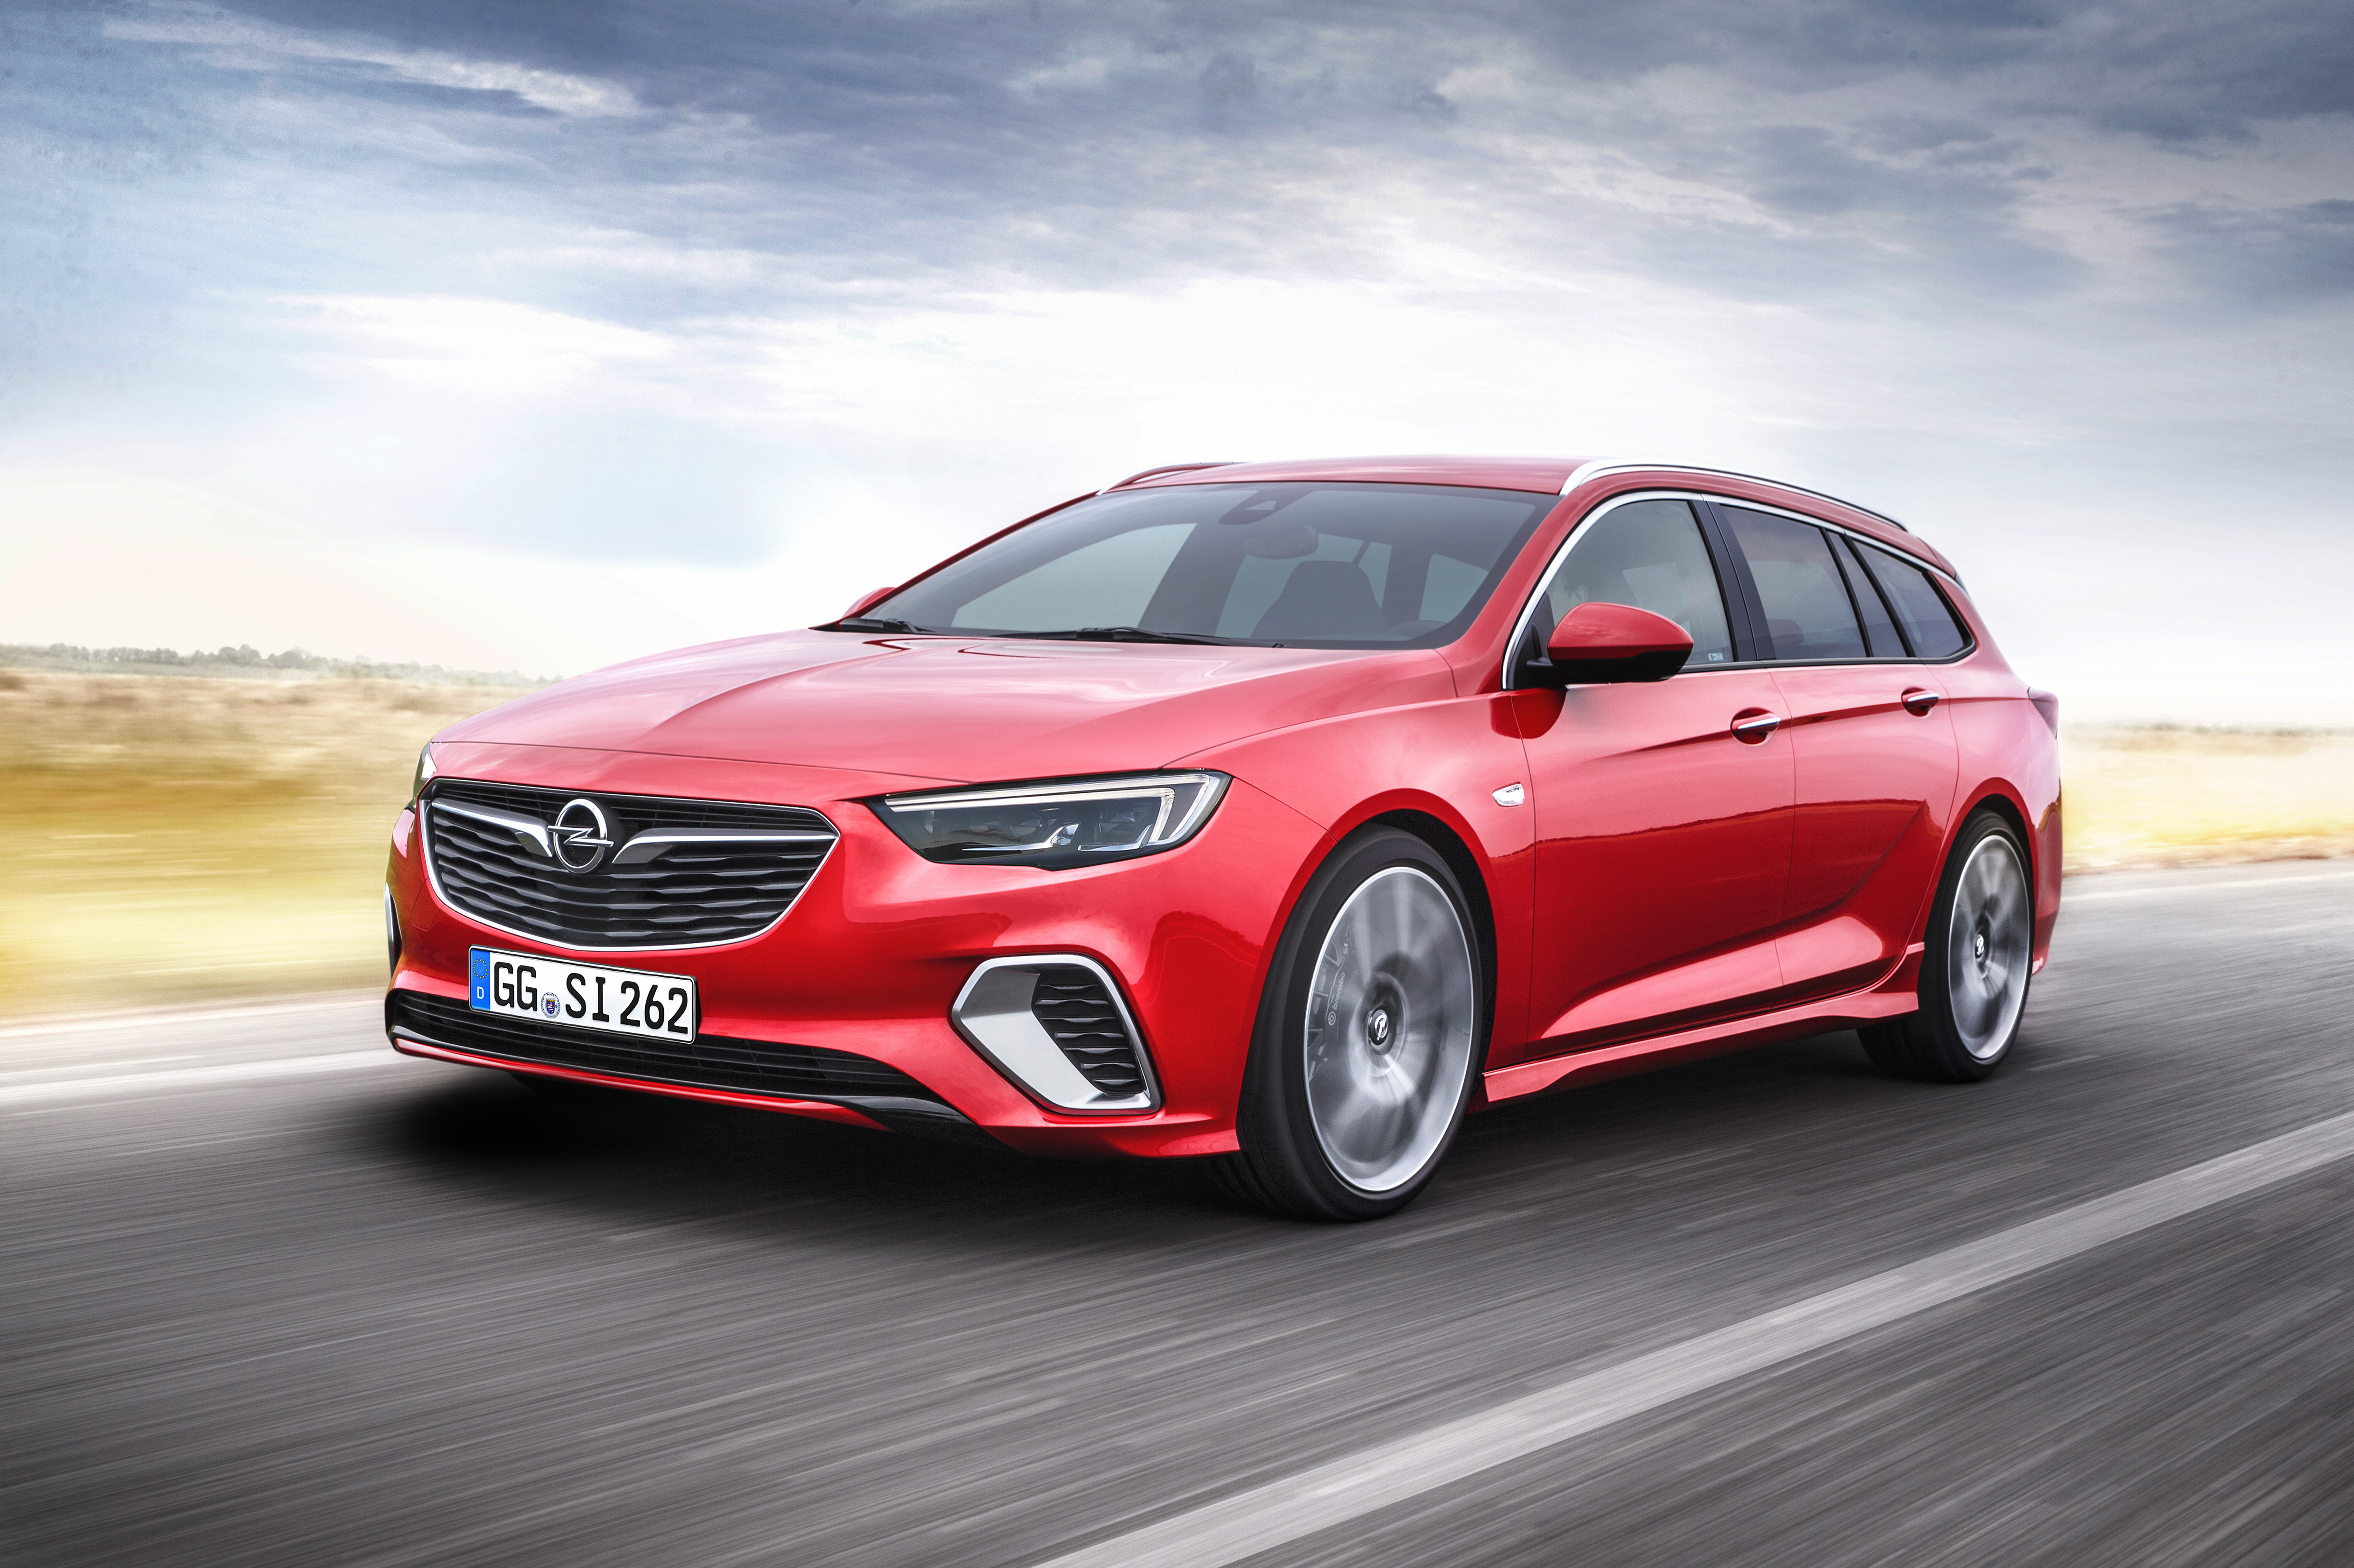 Extra sharp, extra precise and extra powerful: The new Opel Insignia GSi Sports Tourer has everything a sporty driver wants.